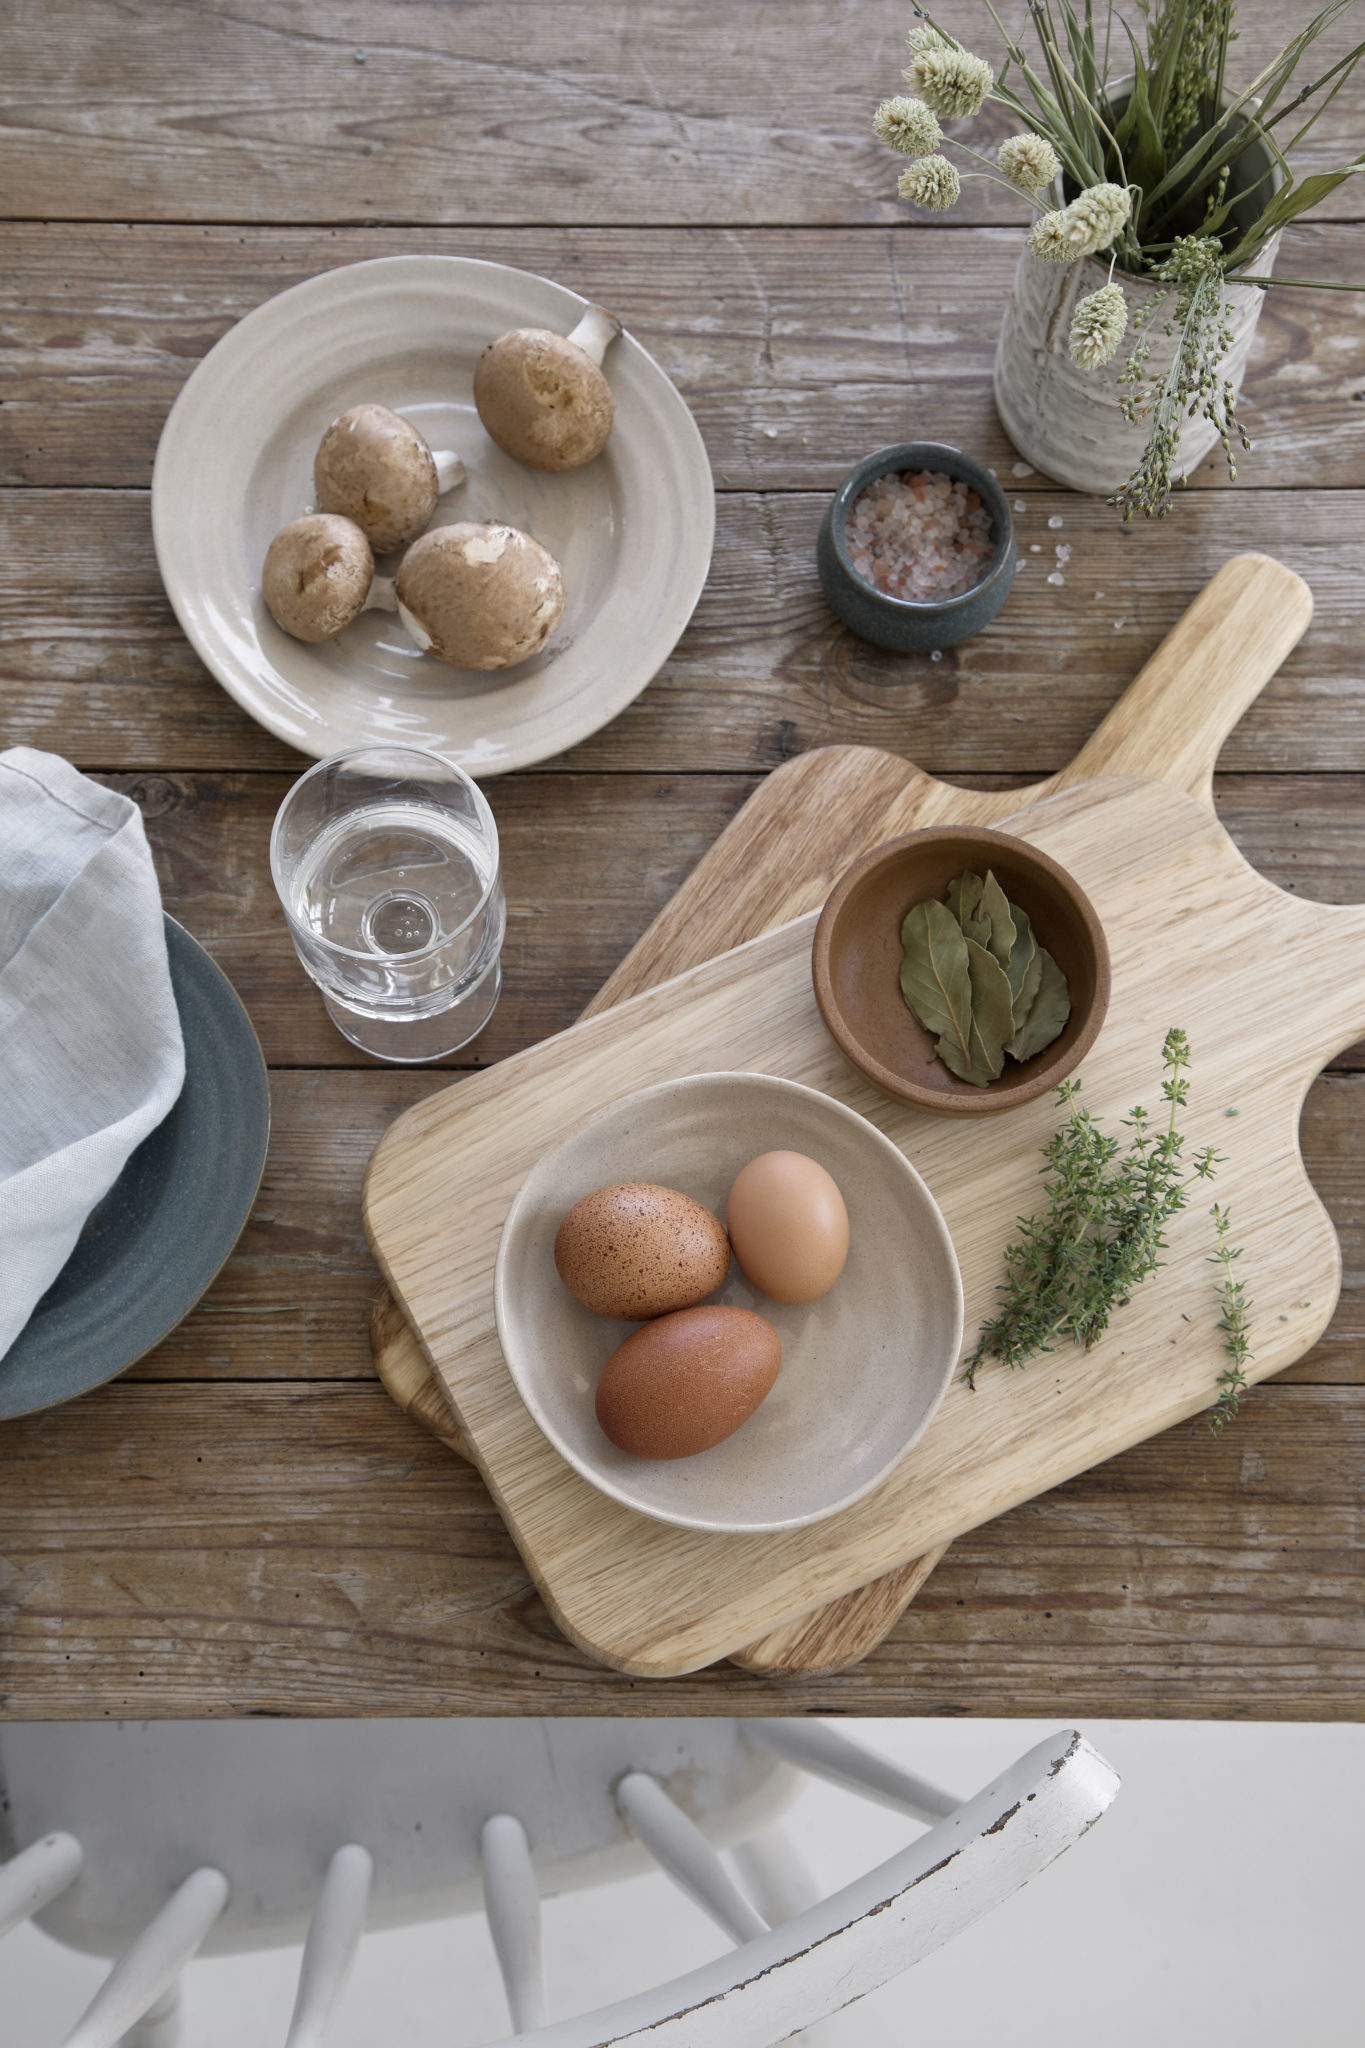 Sostrene Grene Reveal Affordable Autumn Home Collection